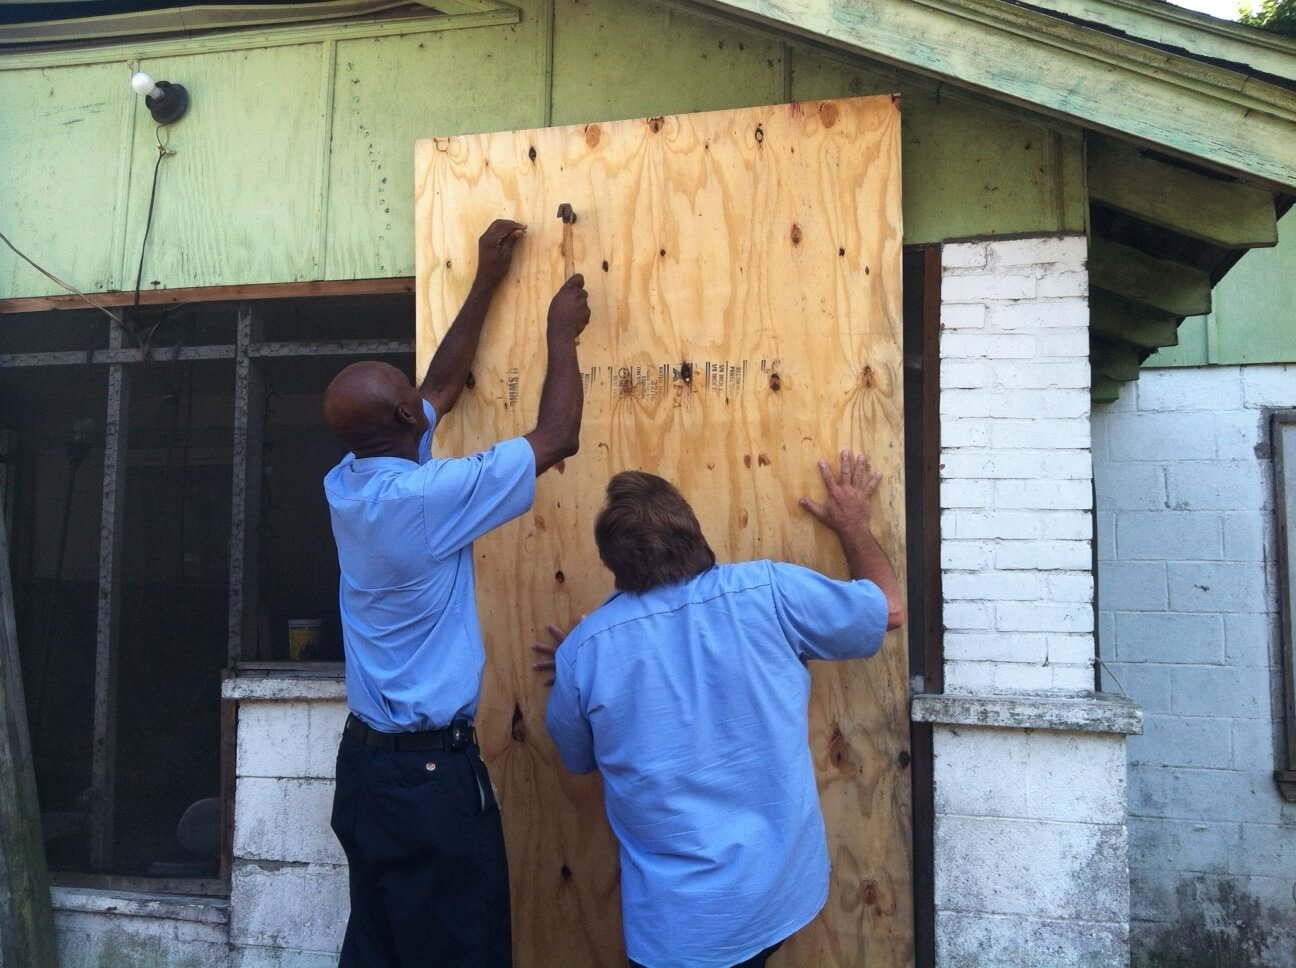 MPD seizes another 'nuisance' property